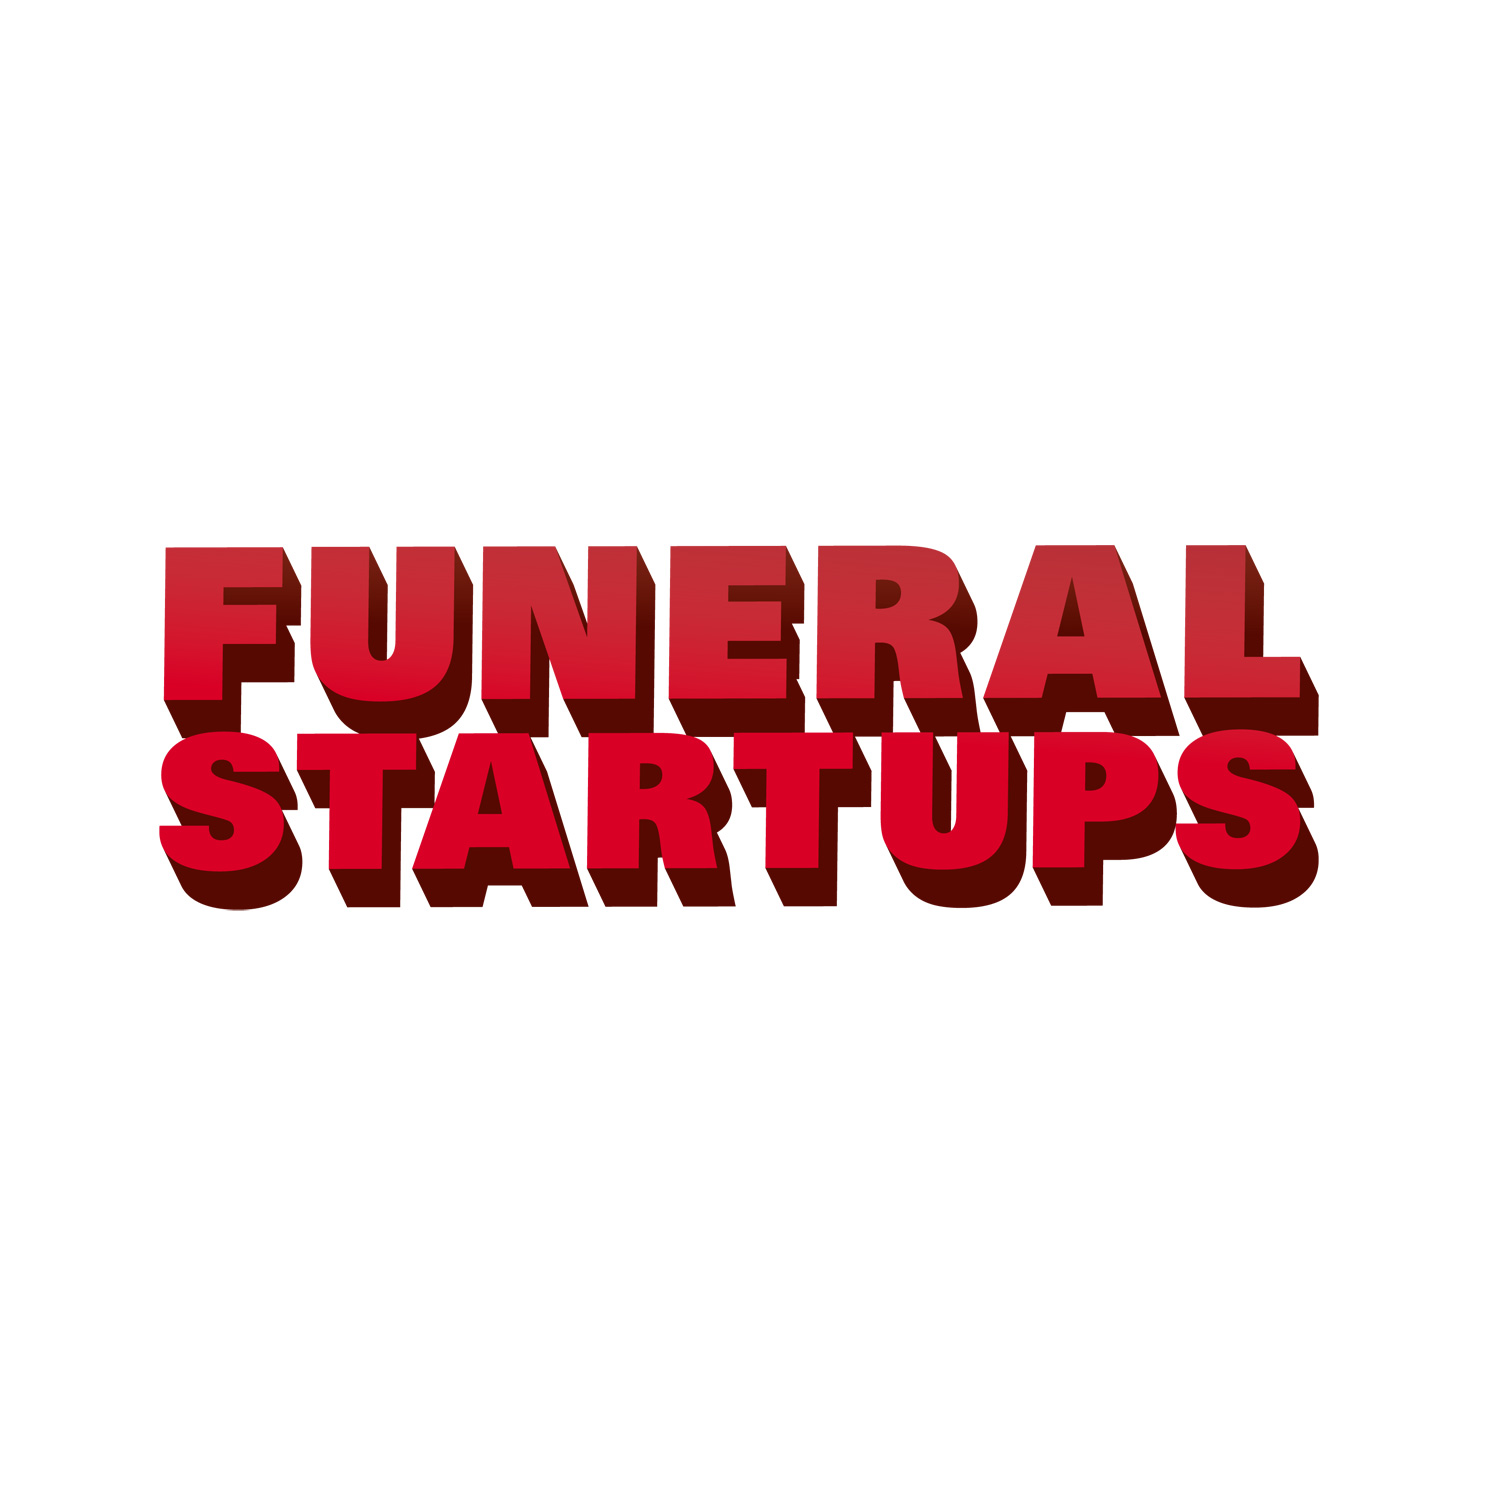 Funeral Startups